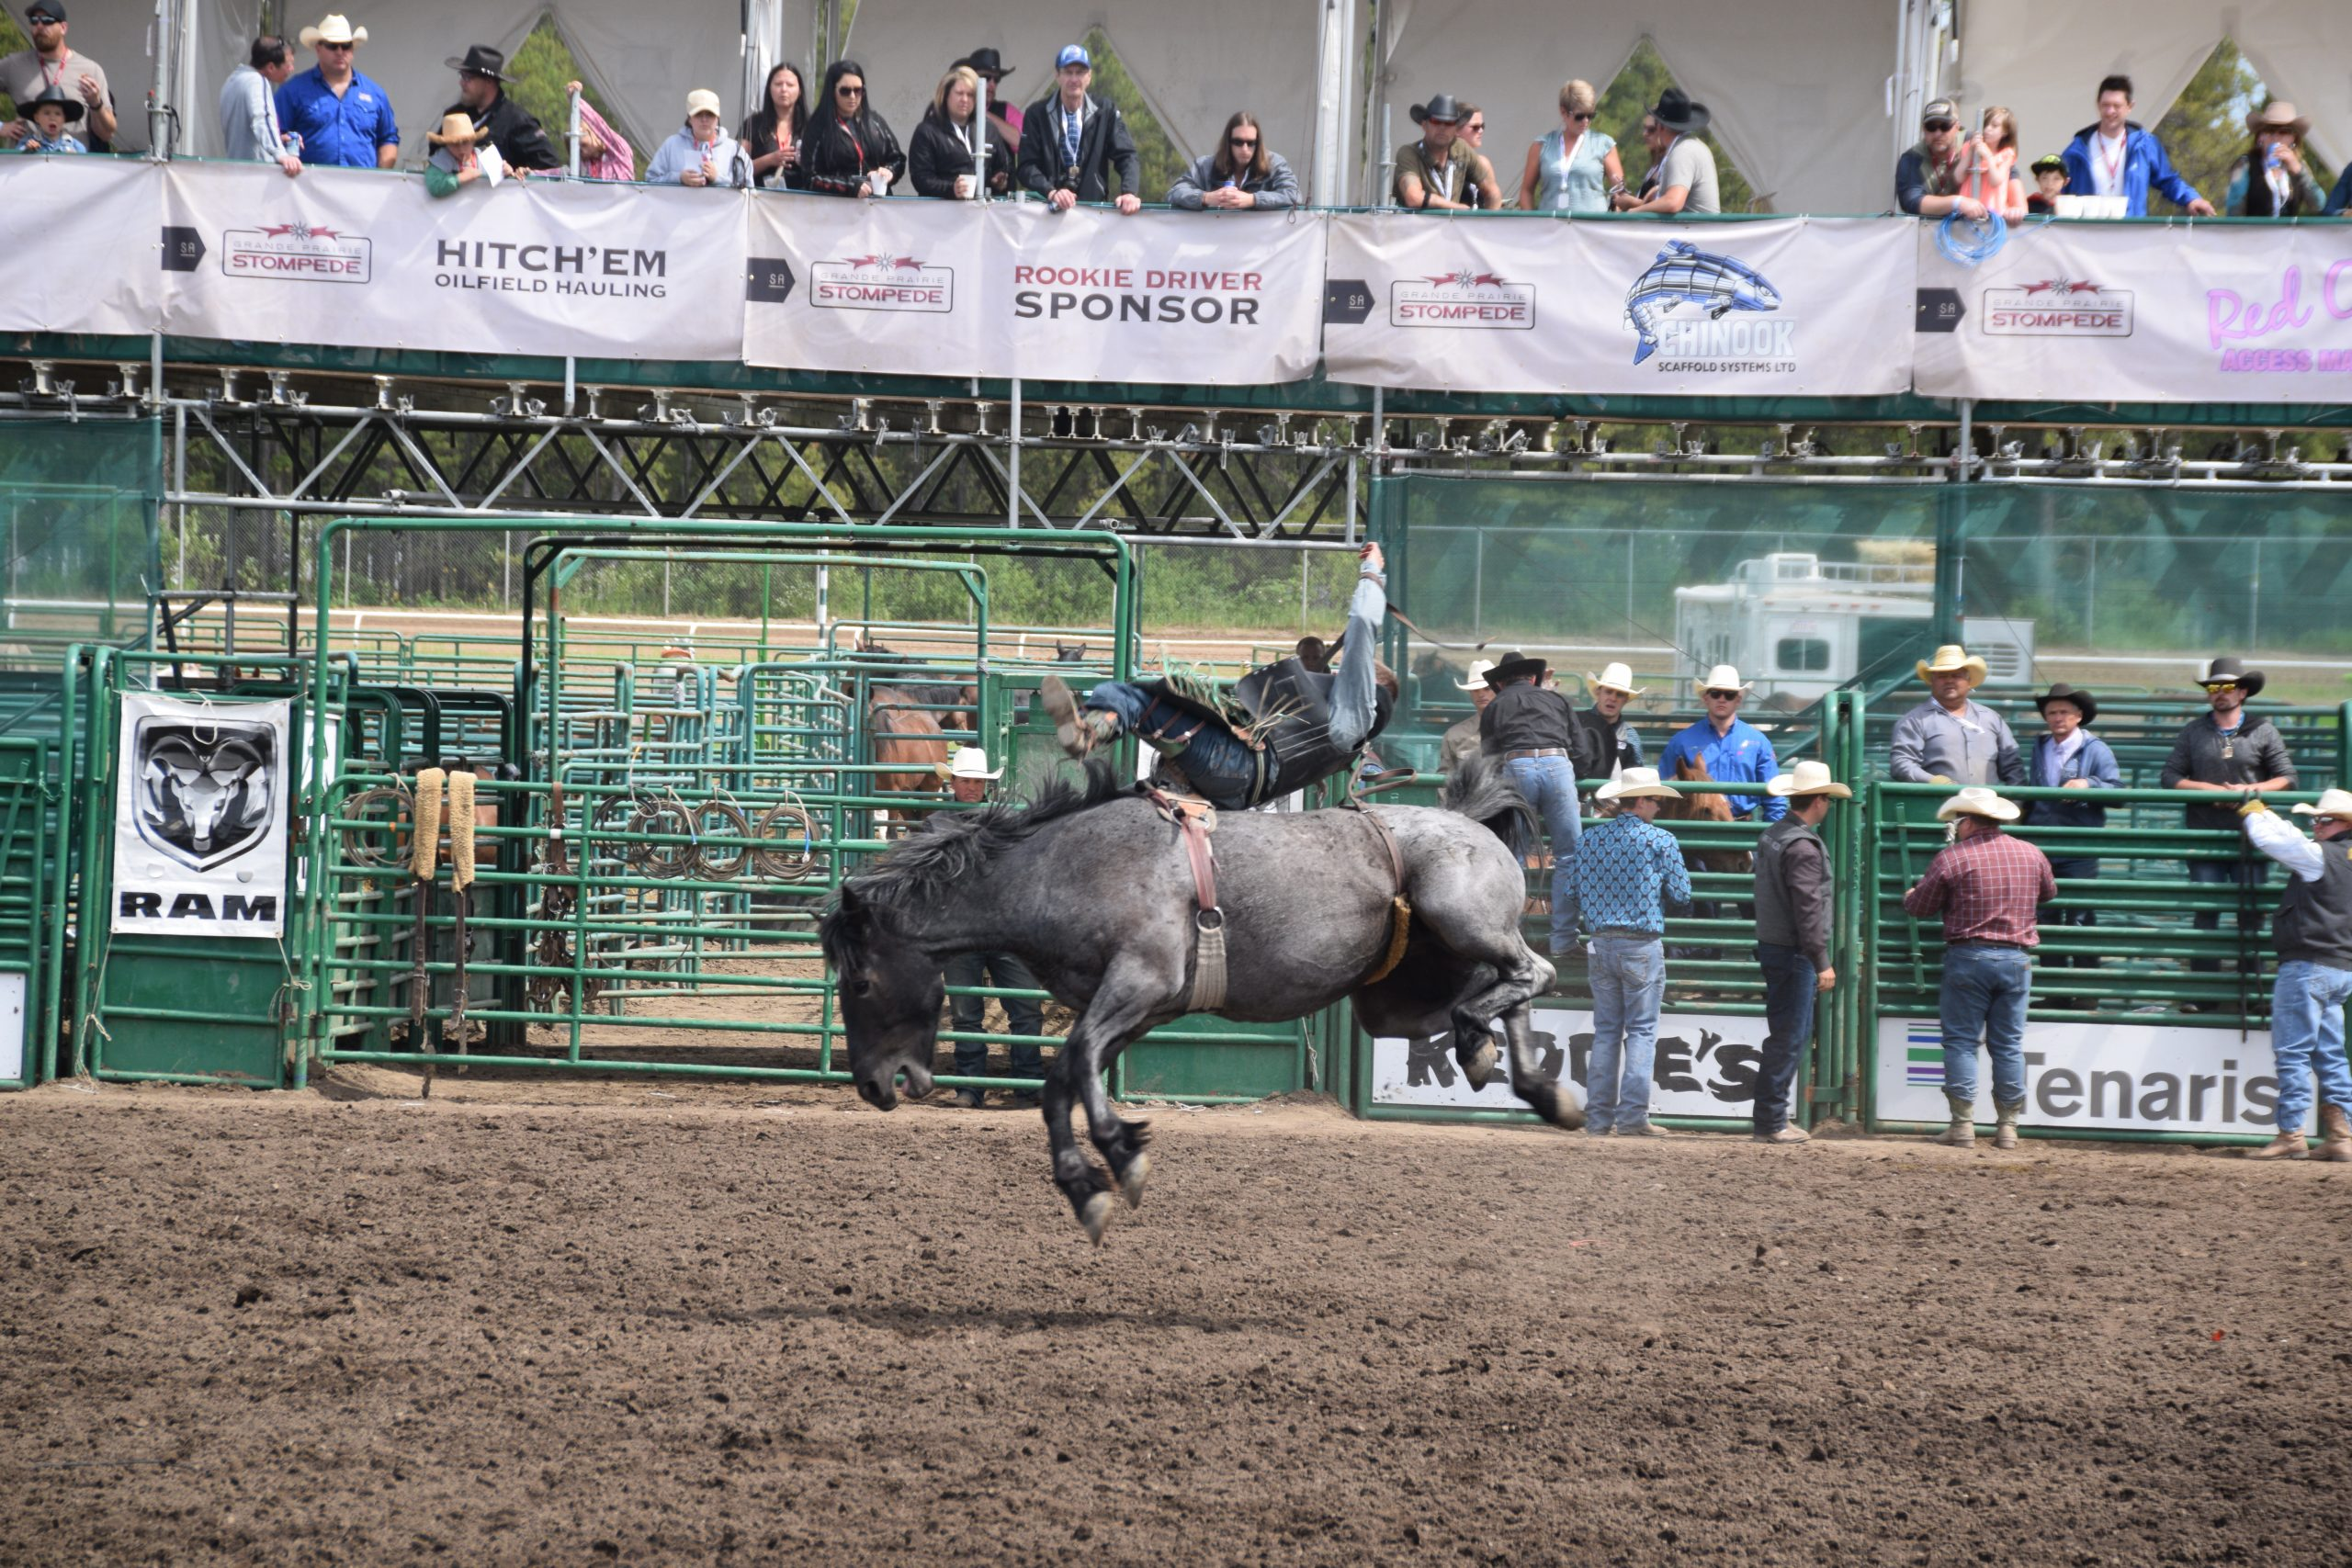 Several leader changes at Stompede rodeo: Worsley cowboy ready to ride again